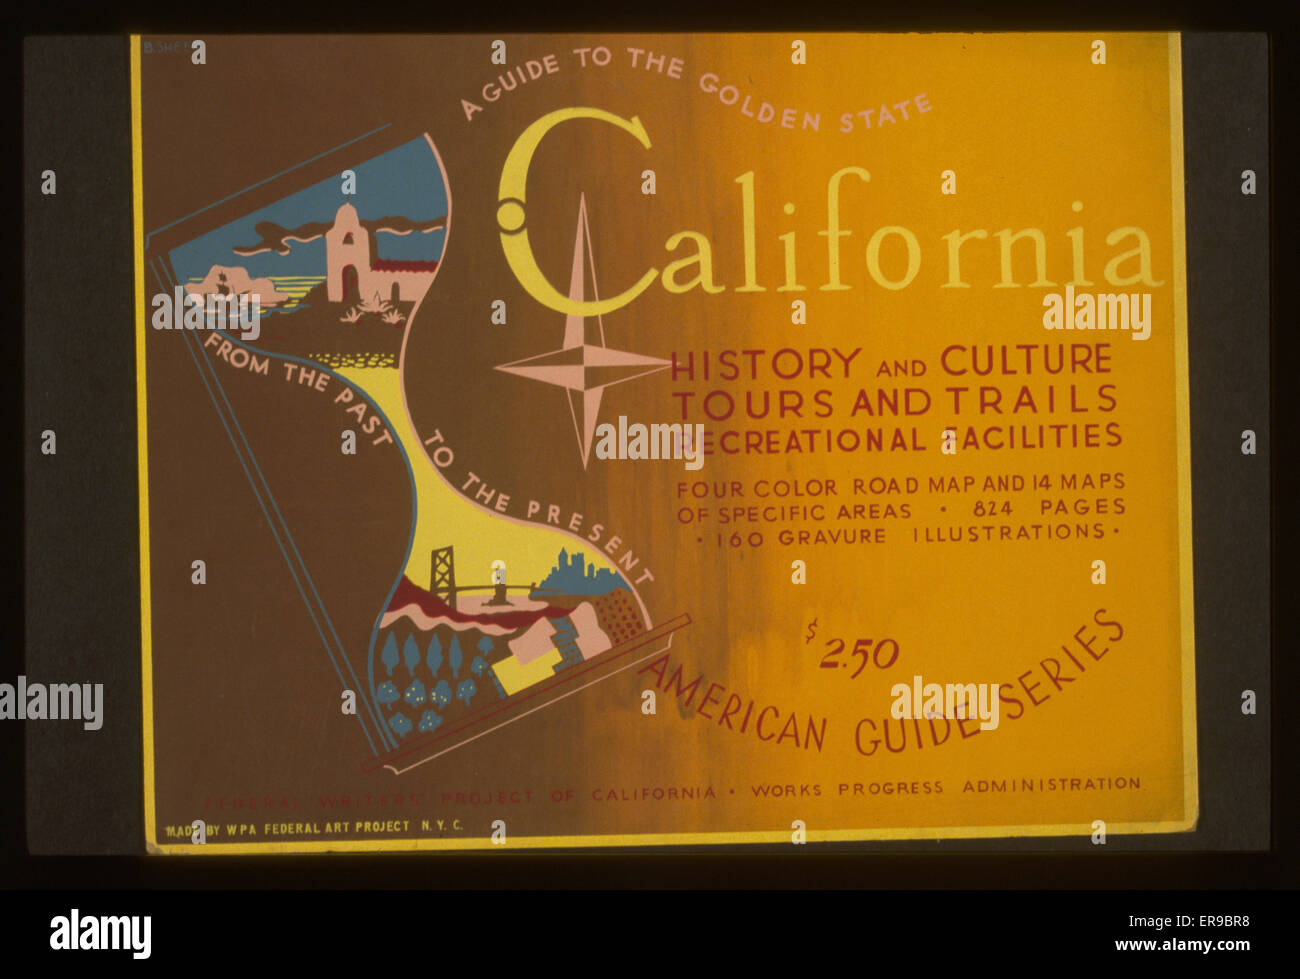 a guide to the golden state from the past to the present california rh alamy com Golden Guide Birds Golden Guide Pond Life